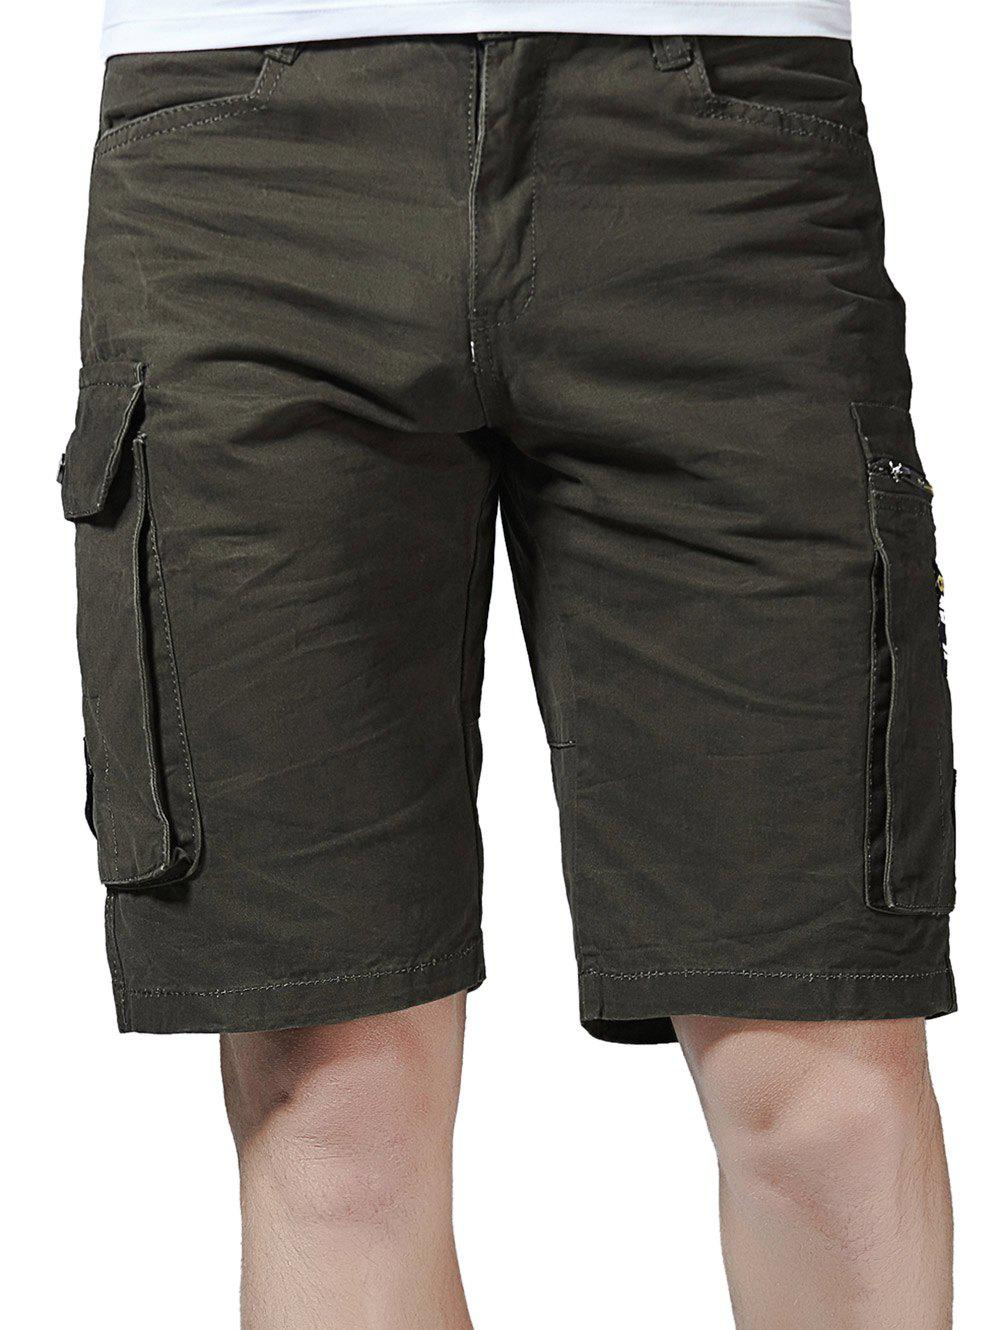 New Flap Pockets Letter Applique Zipper Fly Cargo Shorts